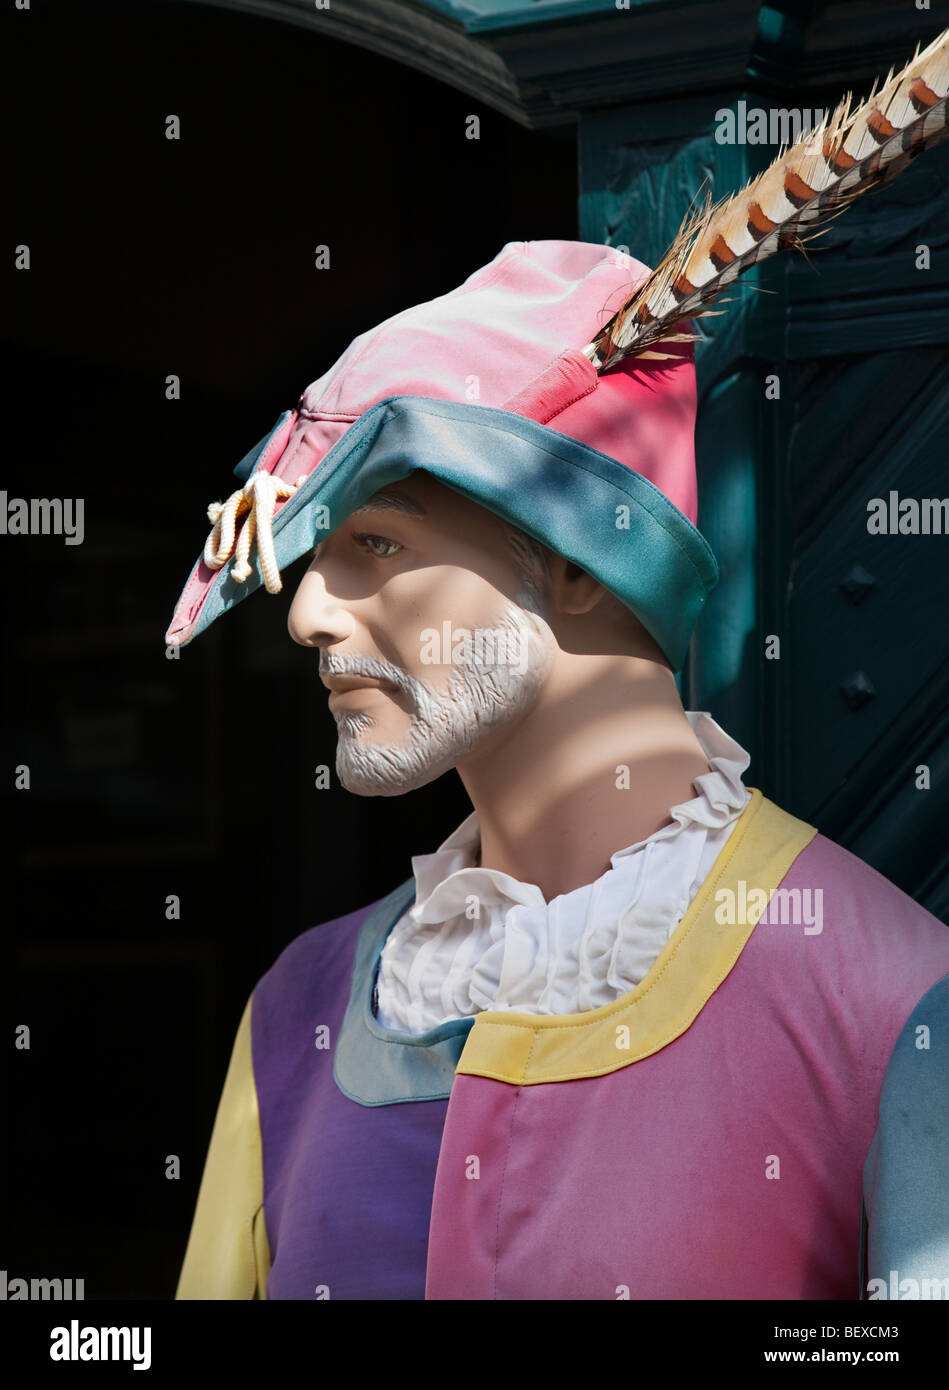 Pied Pier of Hamelin statue at museum Hamelin Germany - Stock Image